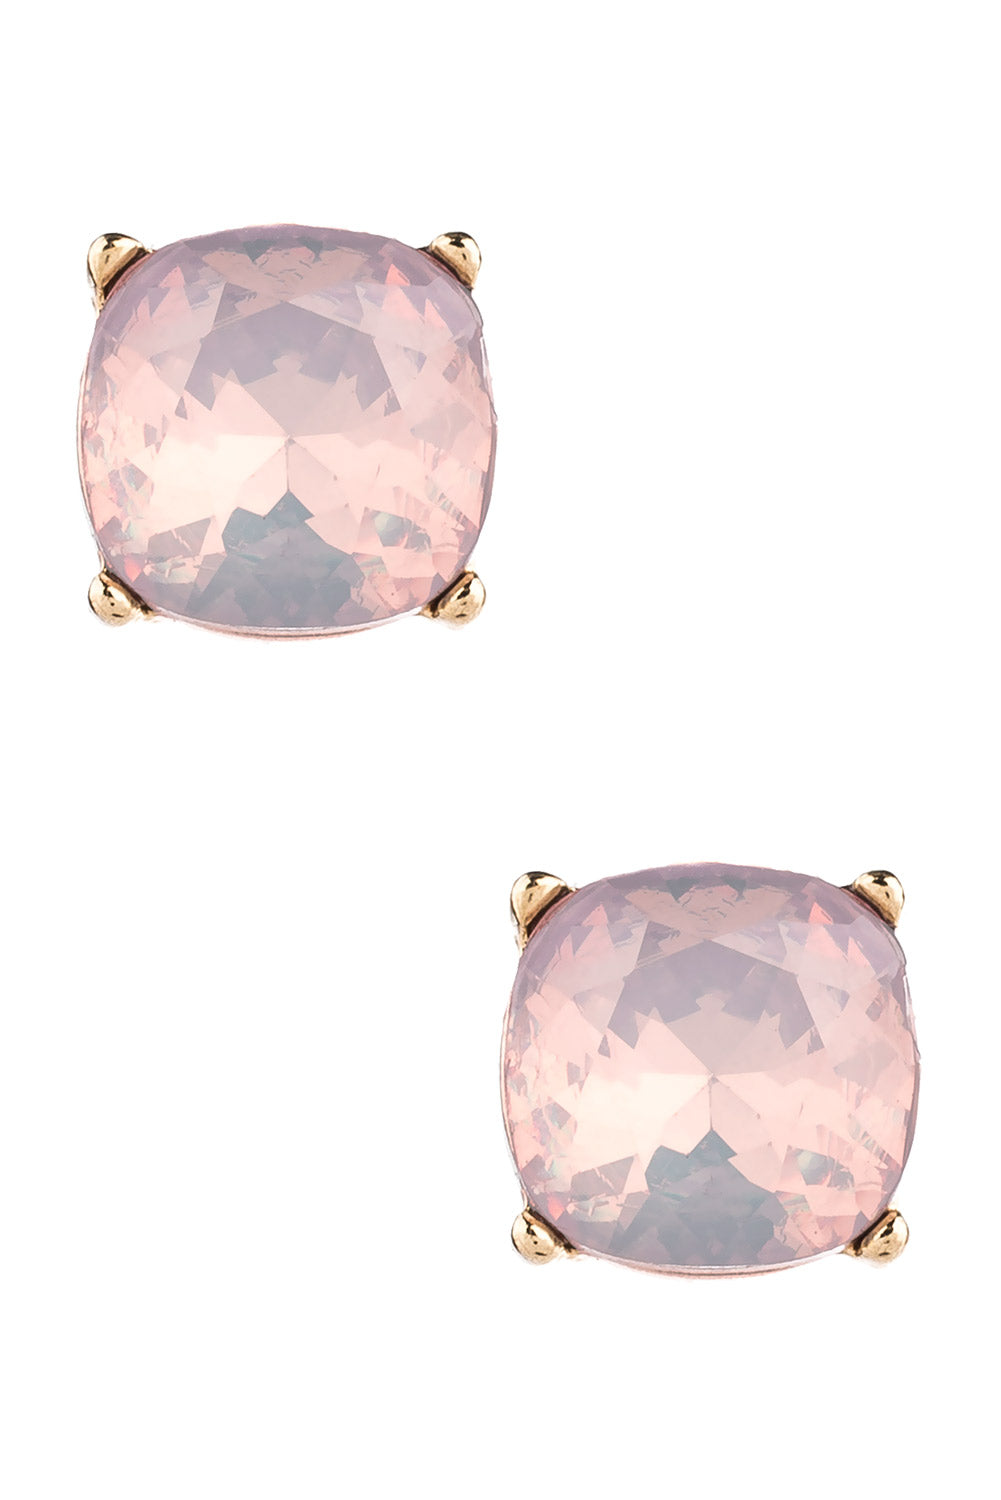 Type 1 Second Star On The Right In Pink Earrings